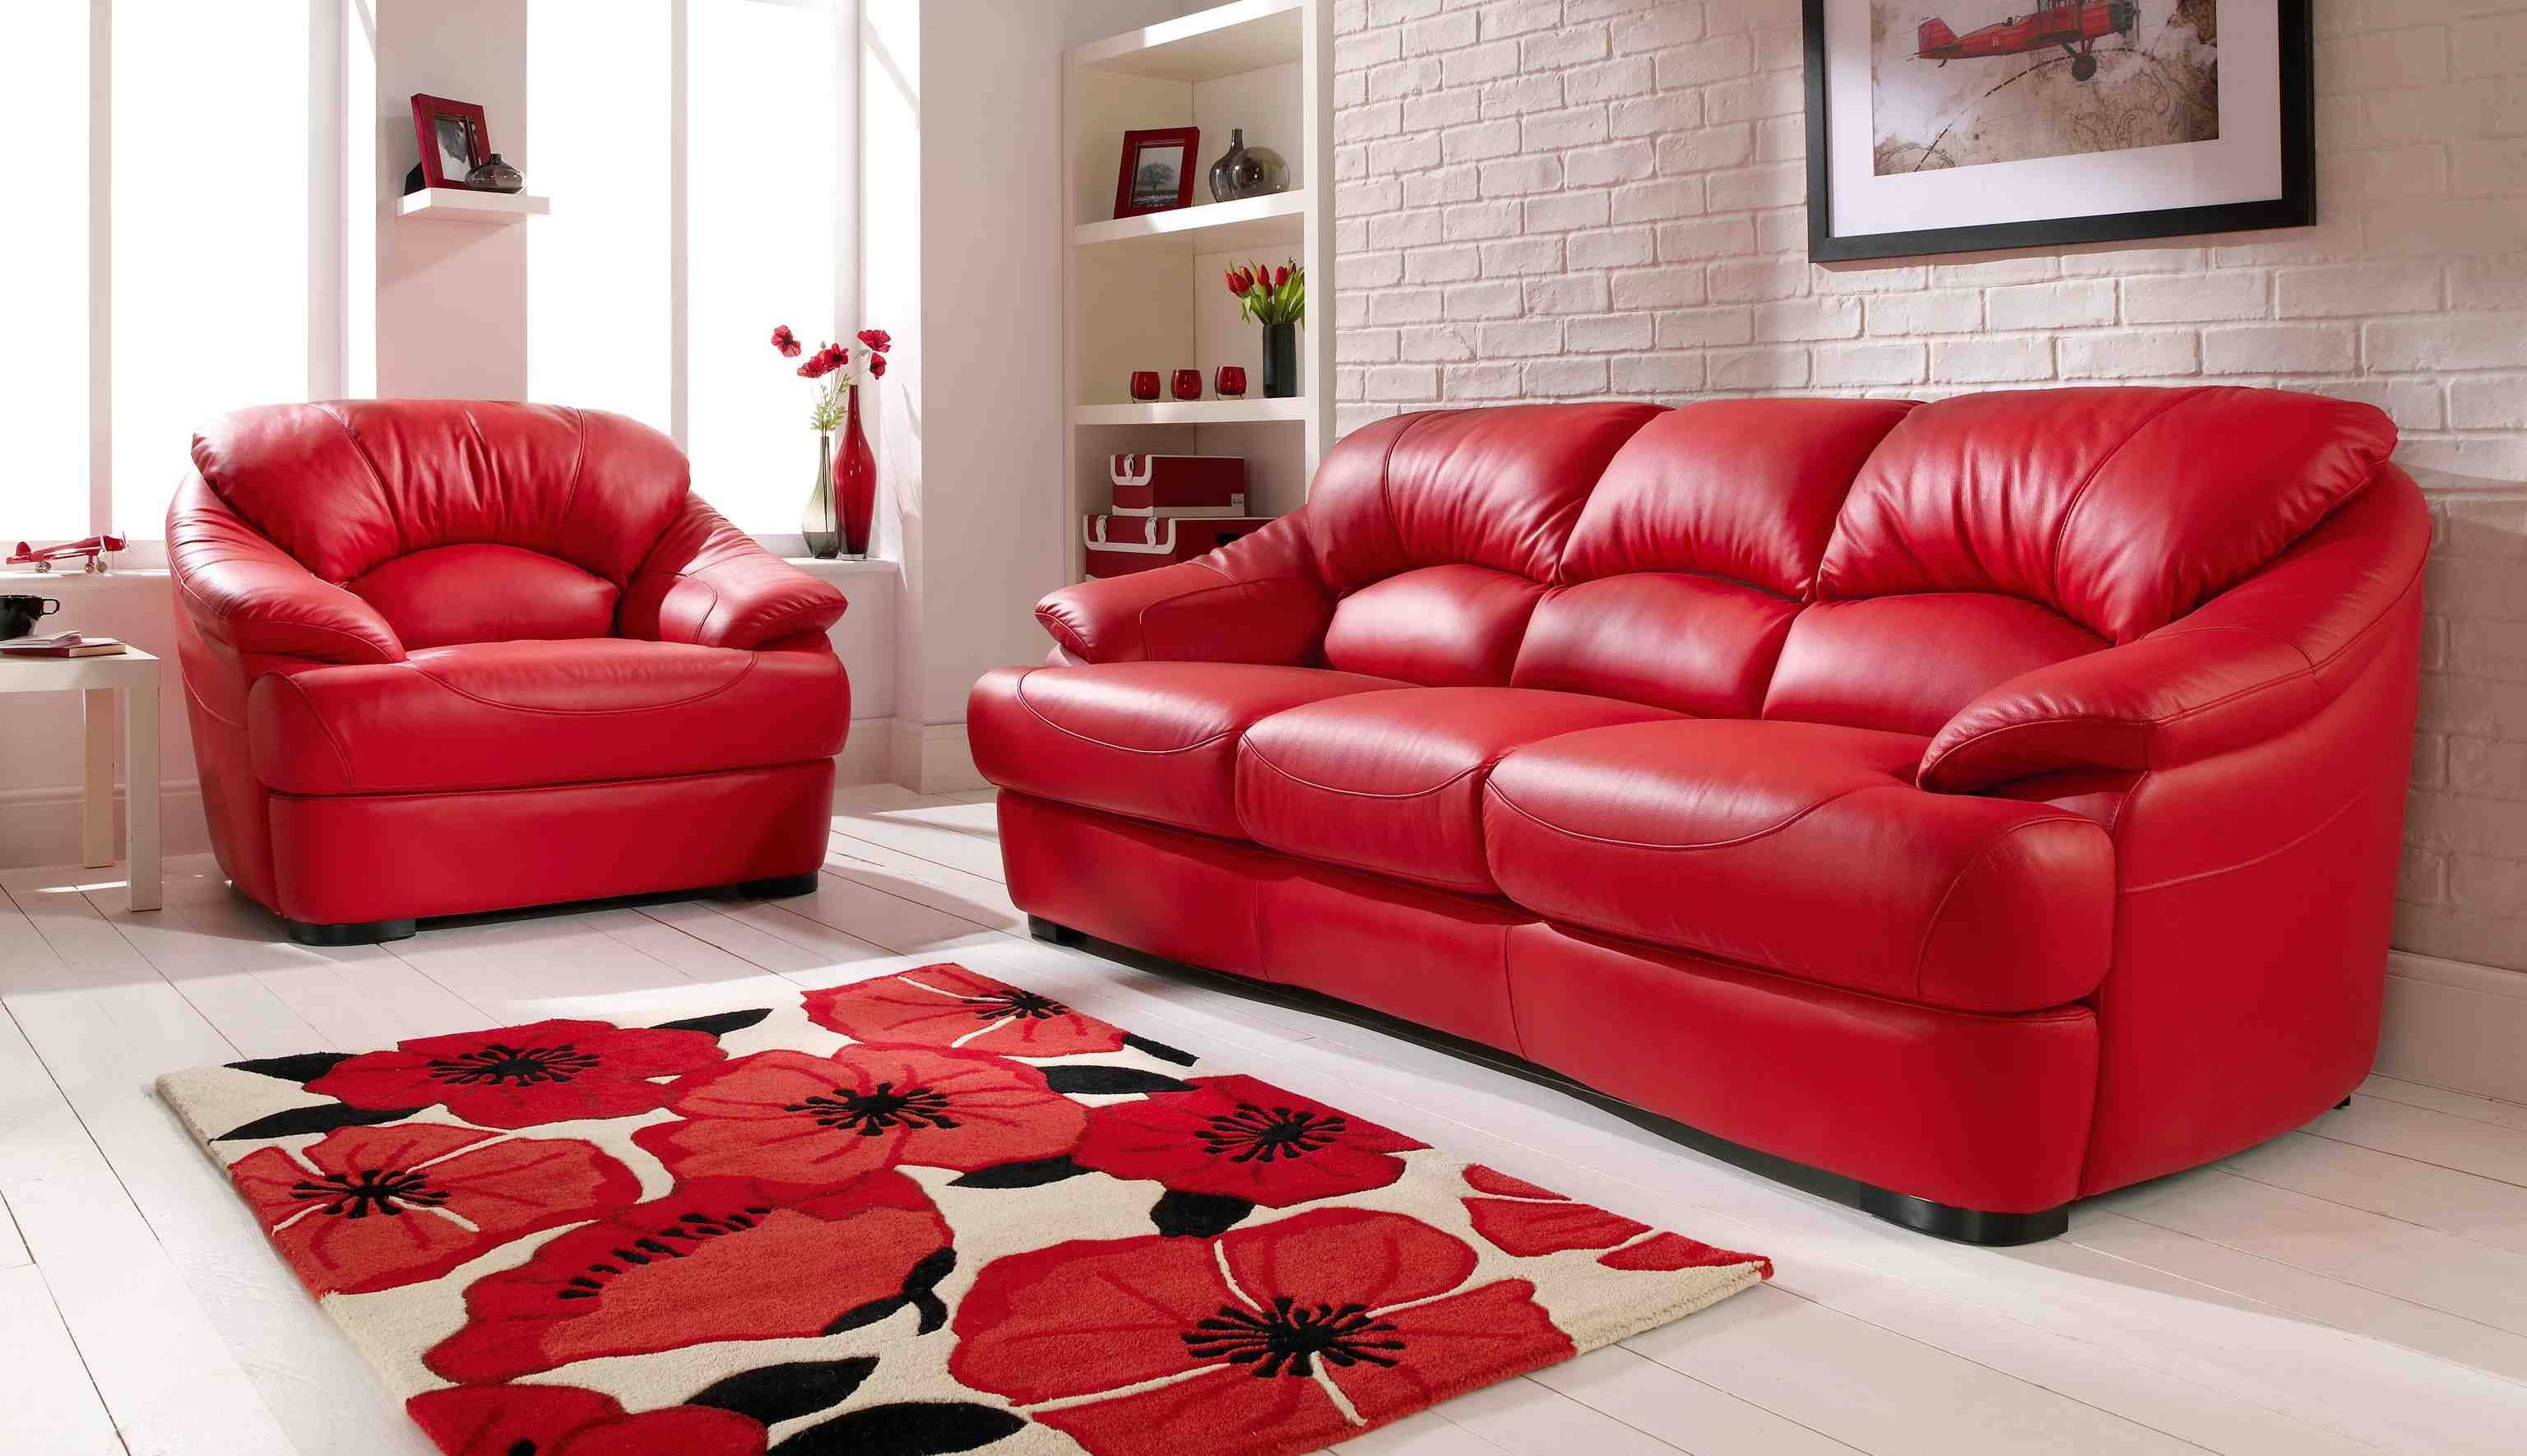 Sofas Center : Unusual Red Leatherofa Pictures Design Corneralered with regard to Unusual Sofas (Image 16 of 25)